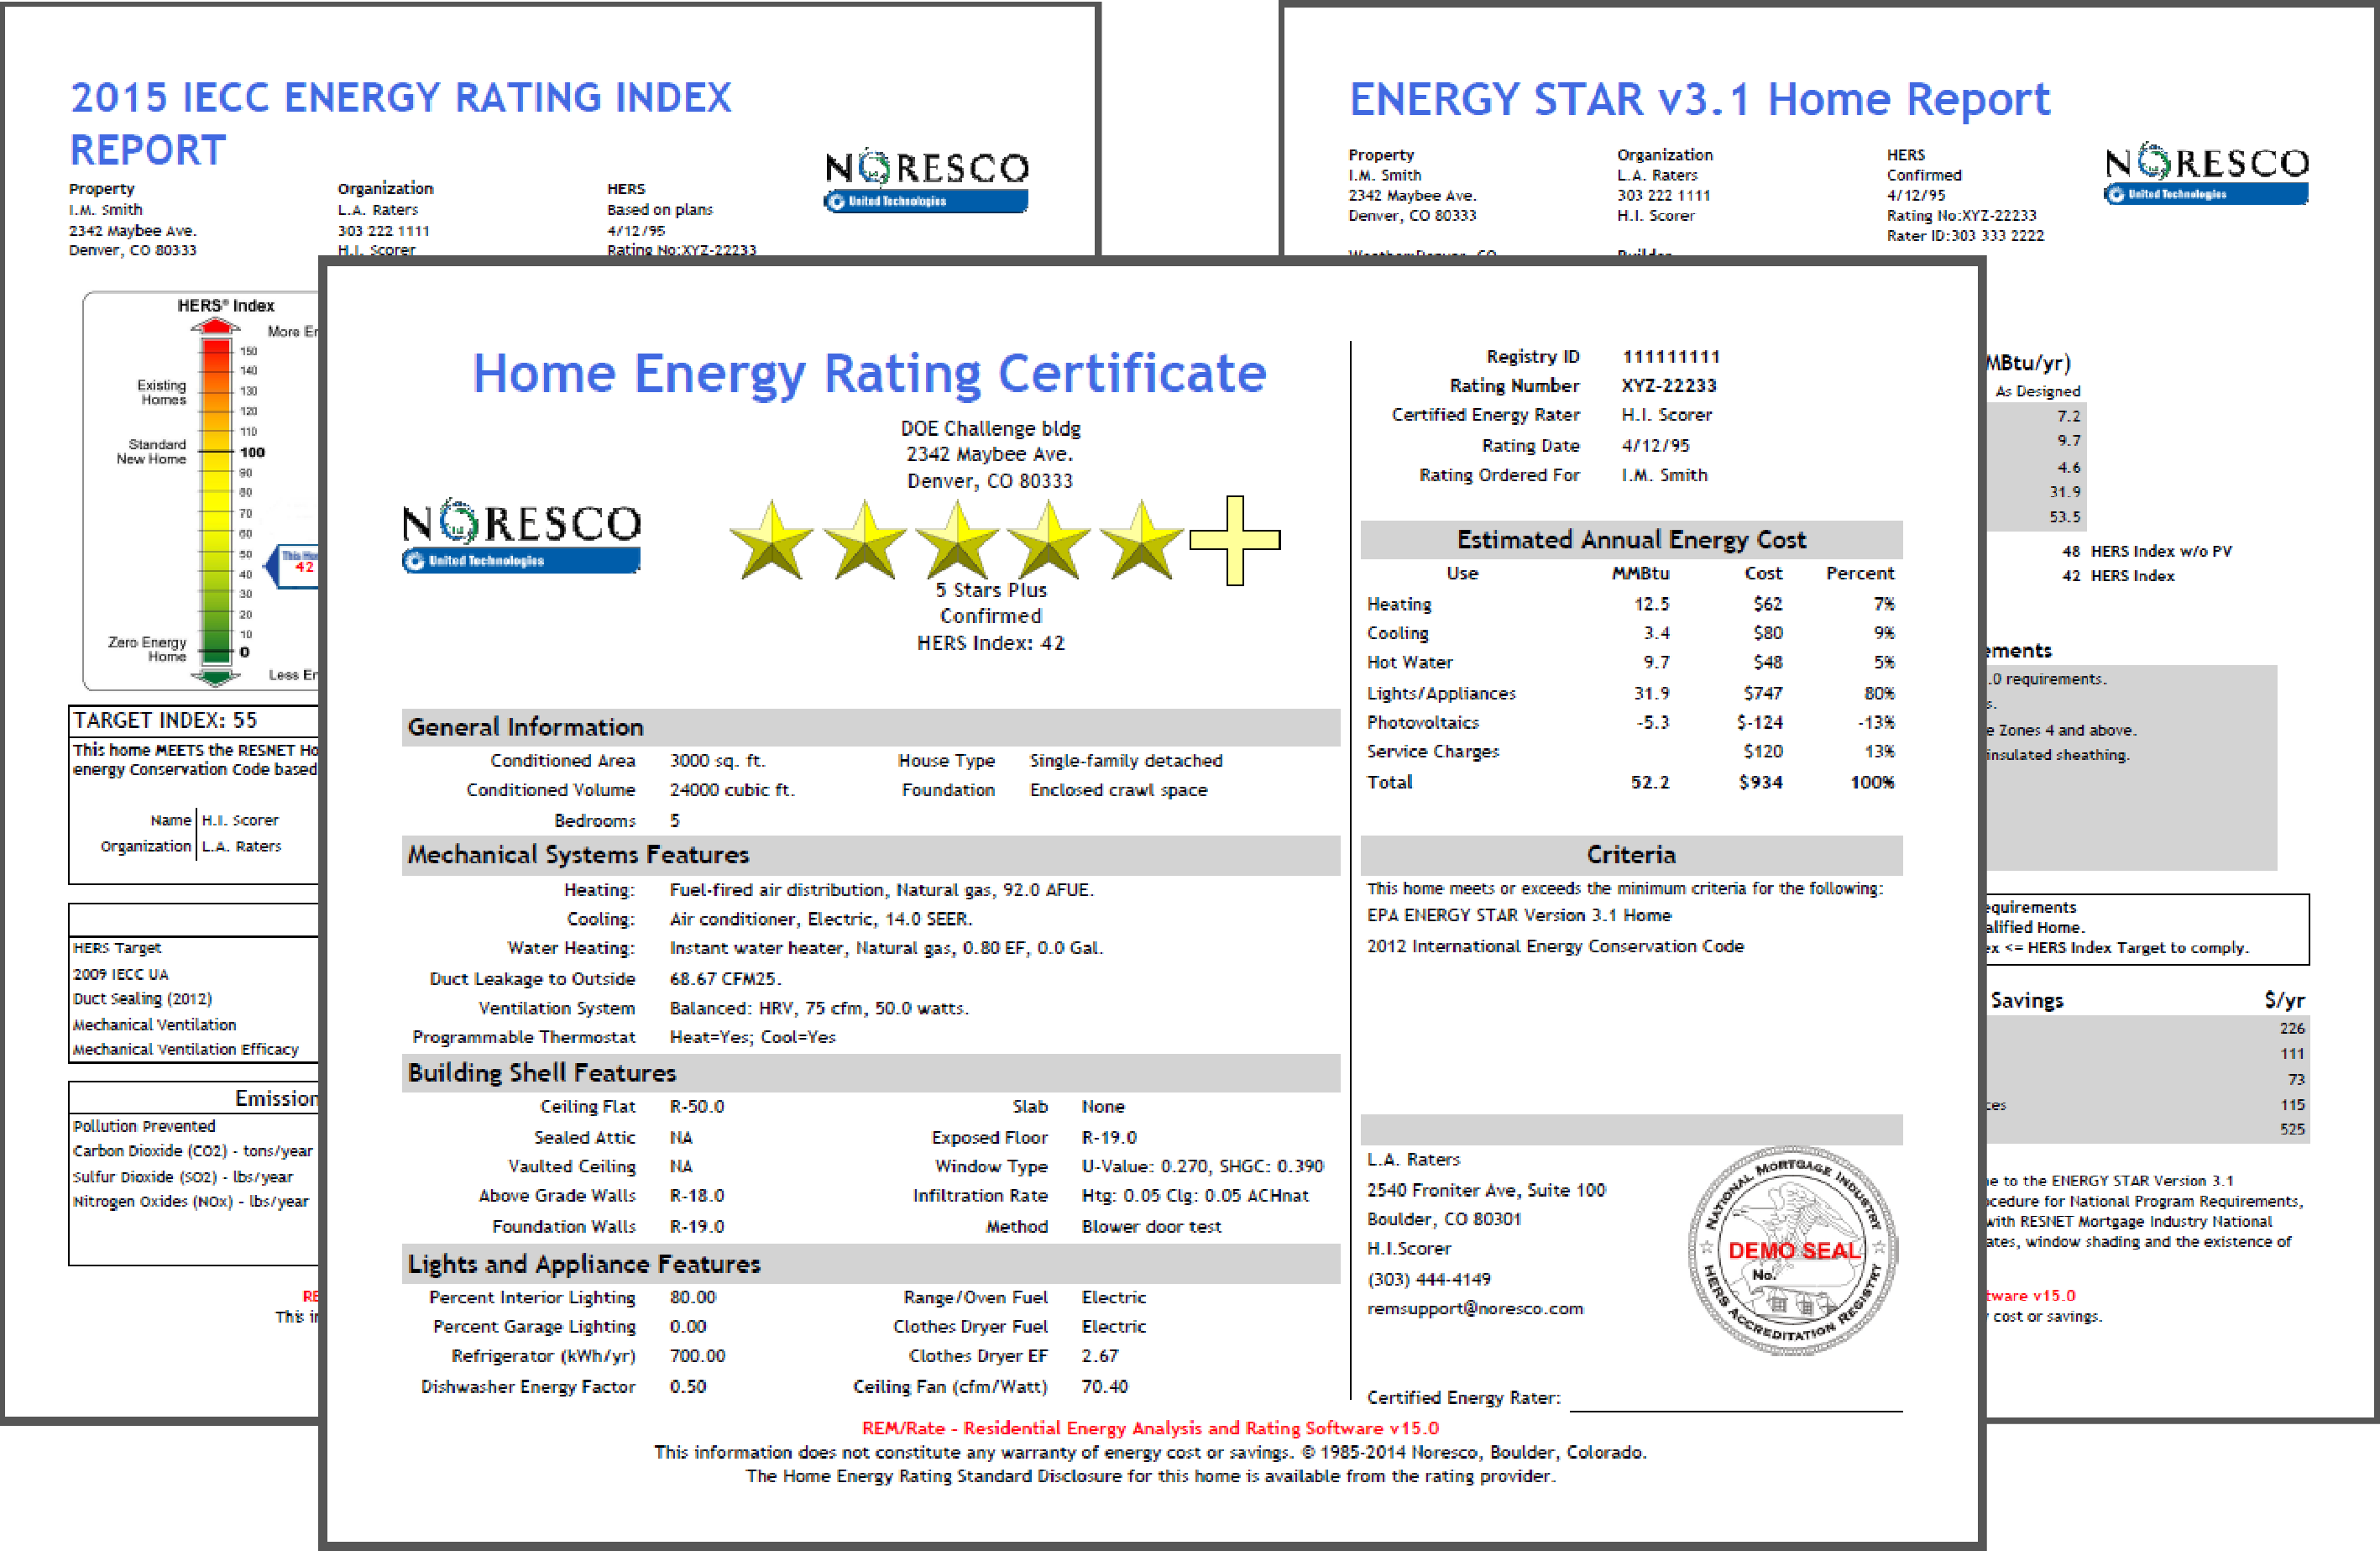 DOE, ENERGY STAR<sup>&reg;</sup> and HERS Reports